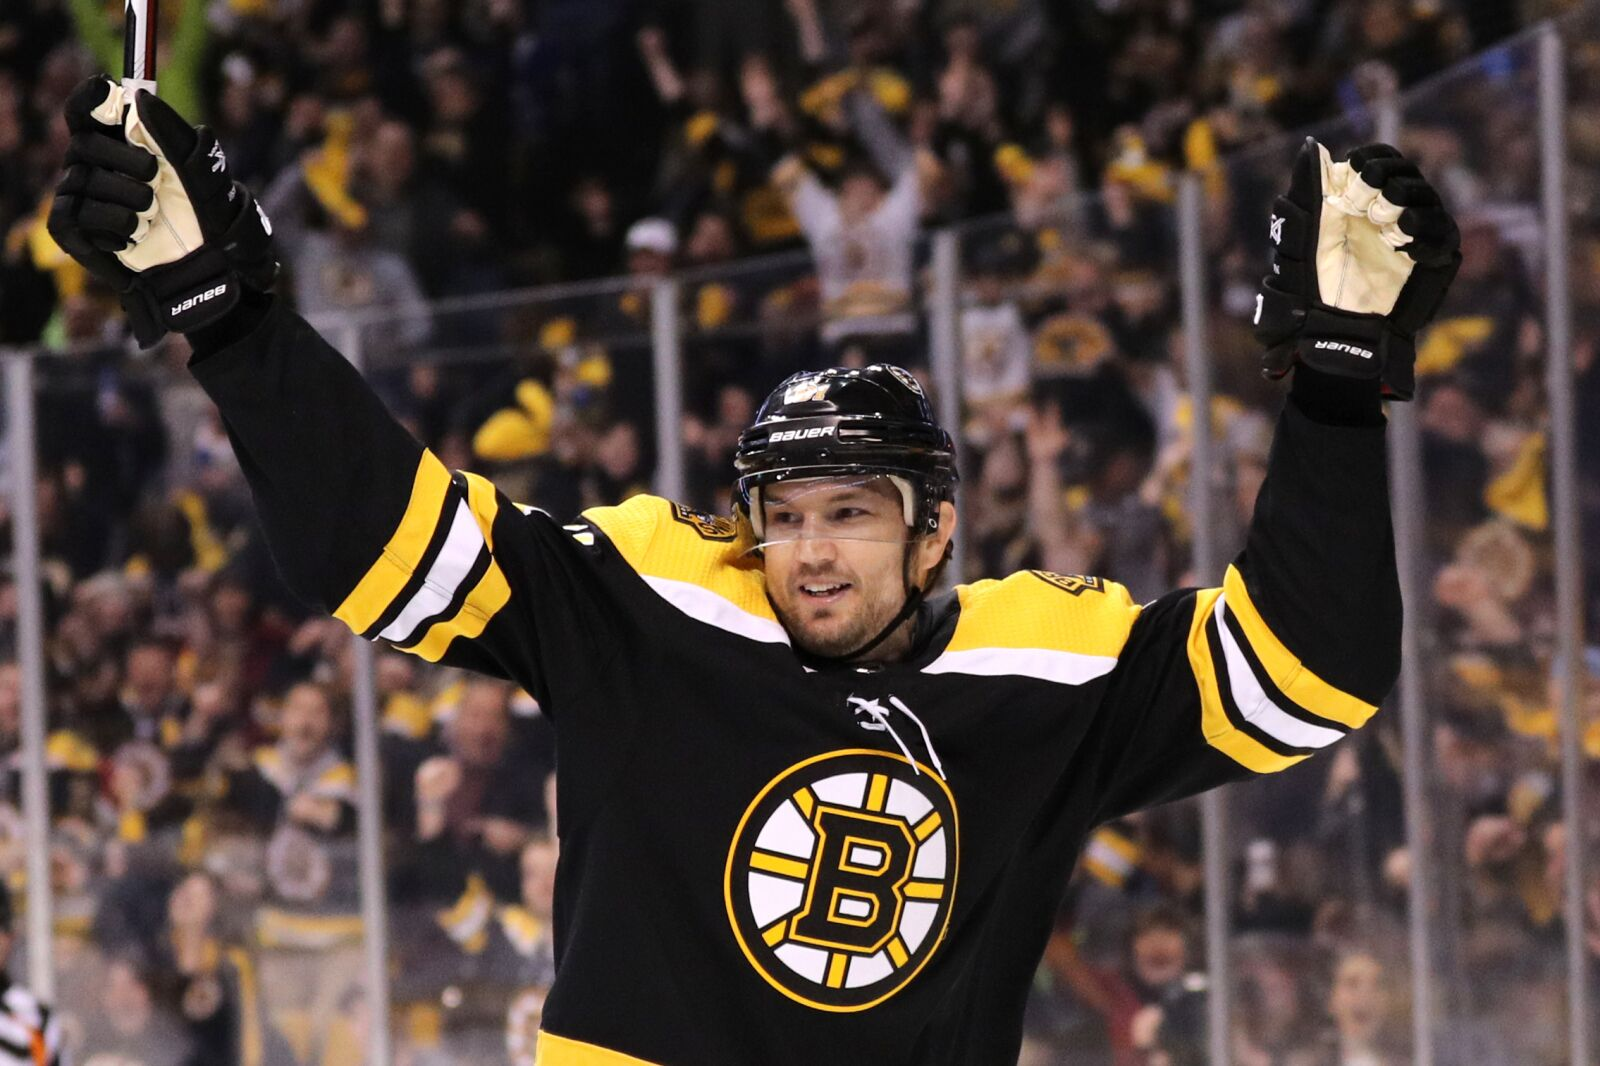 BOSTON, MA - APRIL 14: Rick Nash #61 of the Boston Bruins celebrates after scoring against the Toronto Maple Leafs during the first period of Game Two of the Eastern Conference First Round during the 2018 NHL Stanley Cup Playoffs at TD Garden on April 14, 2018 in Boston, Massachusetts. (Photo by Maddie Meyer/Getty Images)